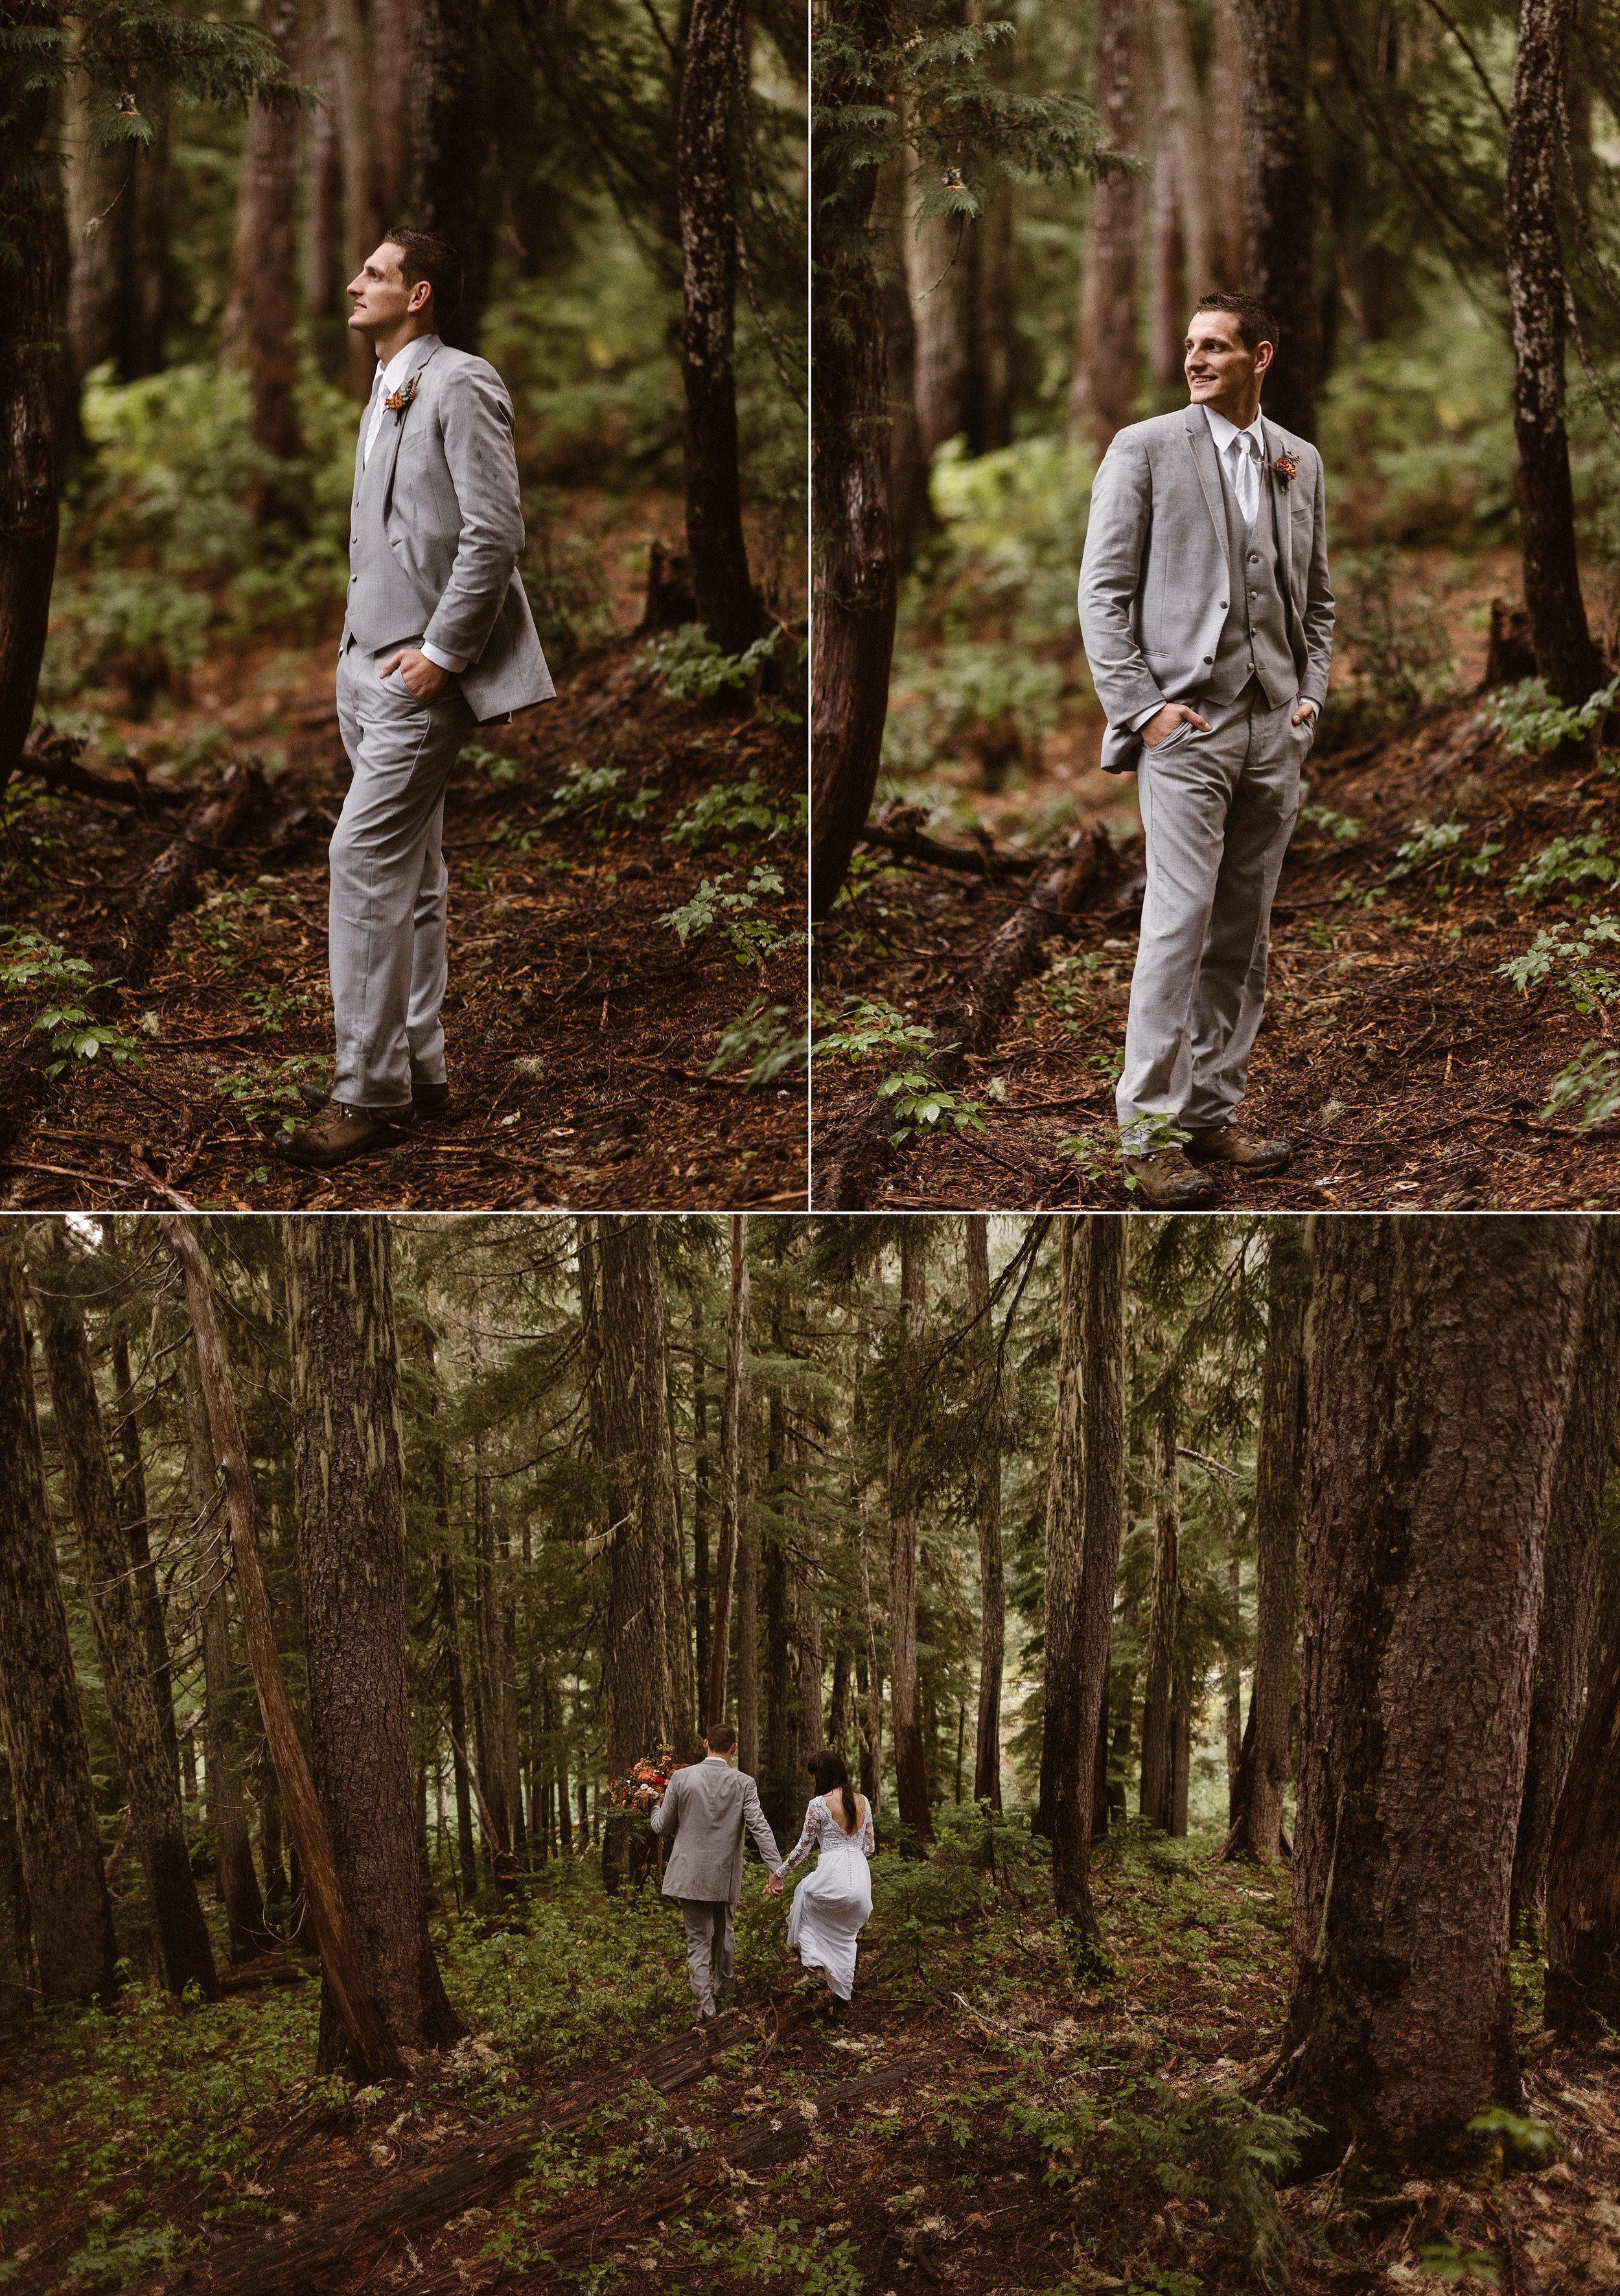 Grant's stood out against the earthy tones of Mount Rainier National Park in his light grey suit. His tall frame mimicking the tall trees that surrounded him. This adventurous couple opted out of a normal wedding and went hiking through the trees with their intimate elopement photographer Maddie Mae.